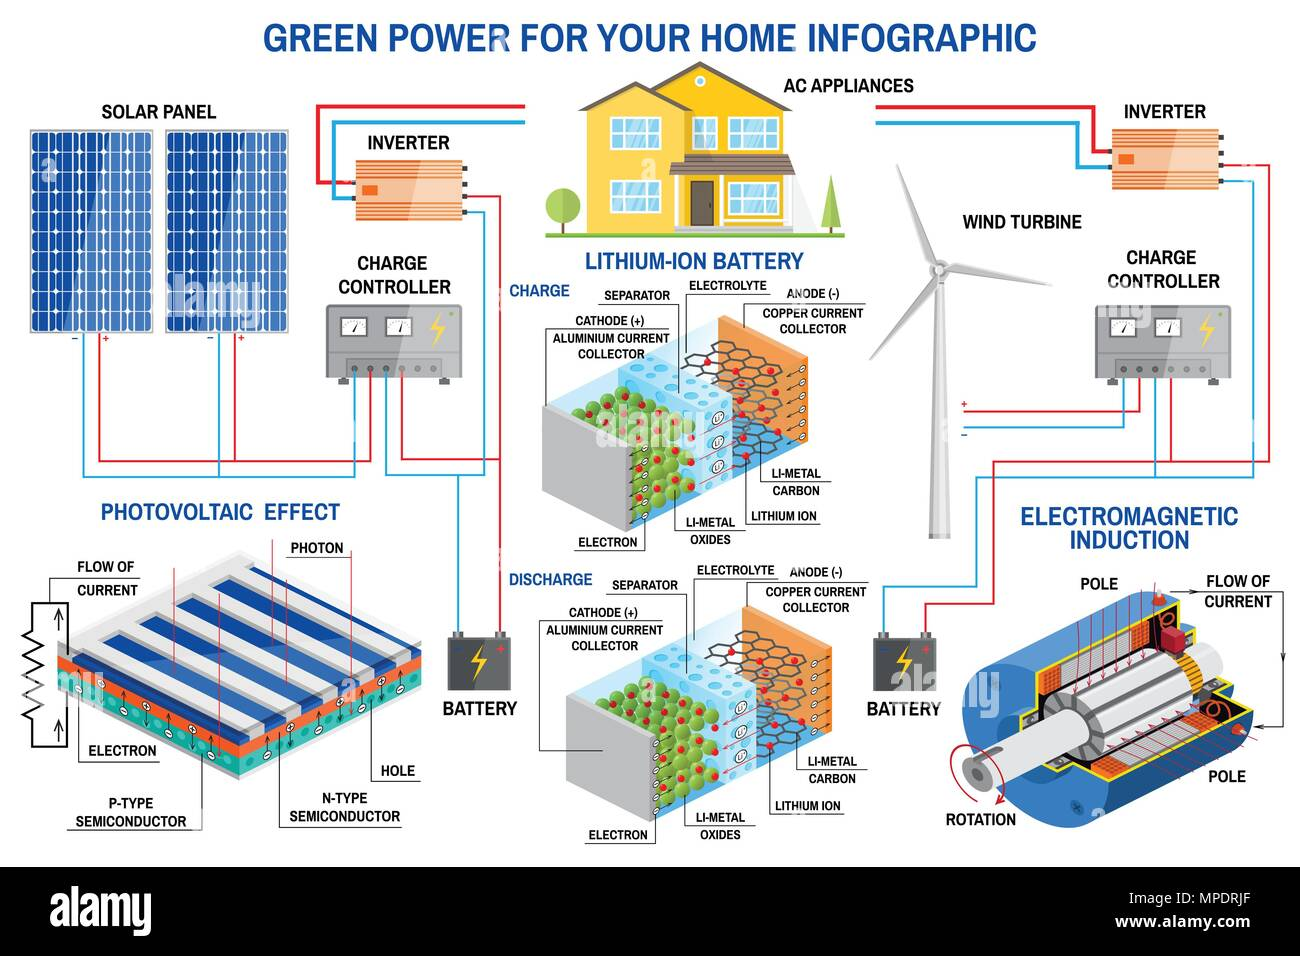 Solar Panel And Wind Power Generation System For Home Infographic Battery Diagram Turbine Charge Controller Inverter Vector Lithium